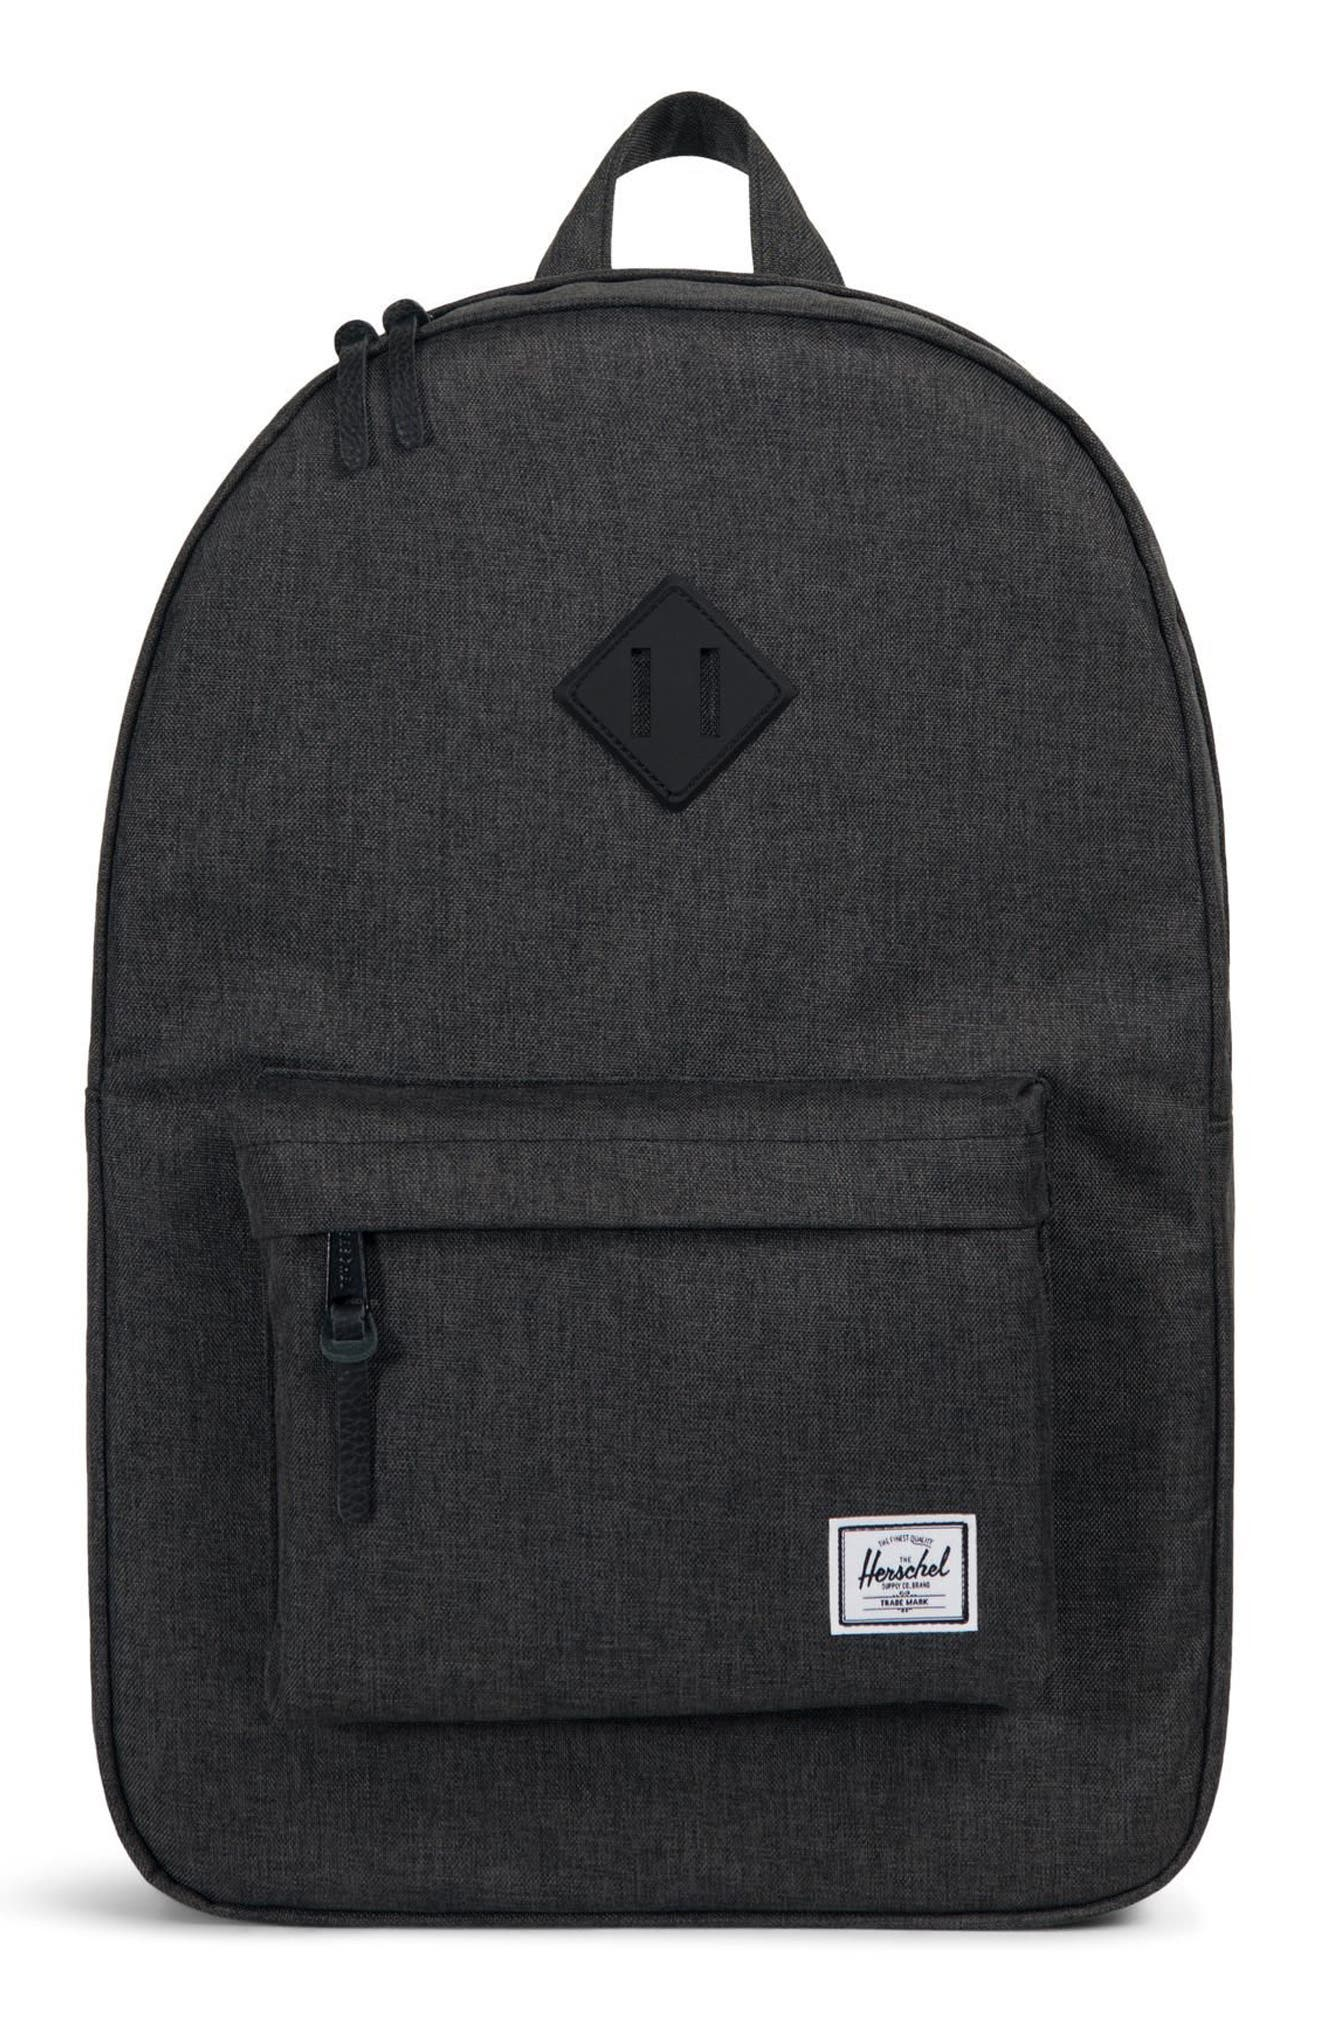 Heritage Backpack,                             Main thumbnail 1, color,                             BLACK CROSSHATCH